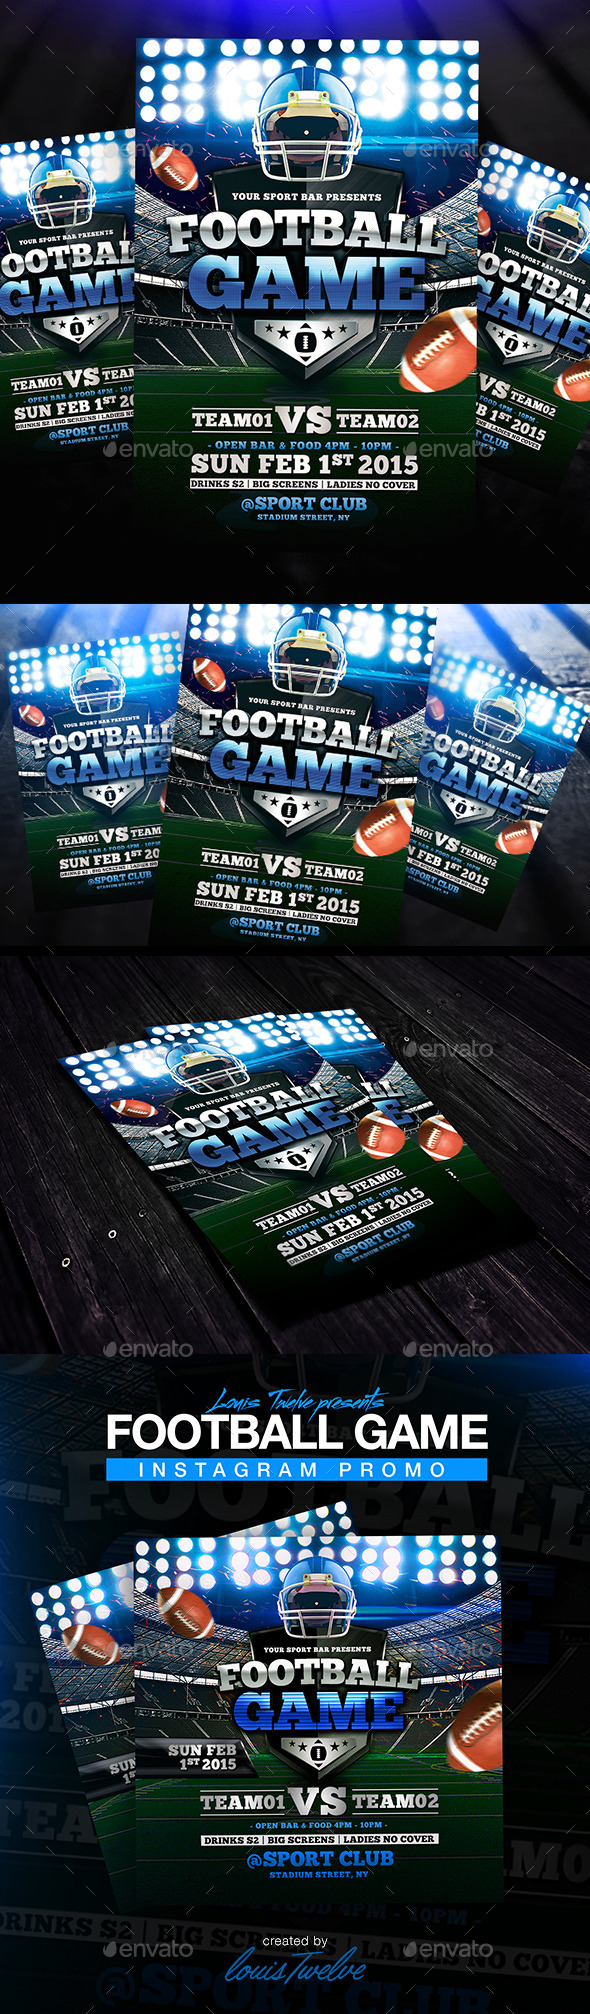 Football Game Flyer + Instagram Promo - Sports Events